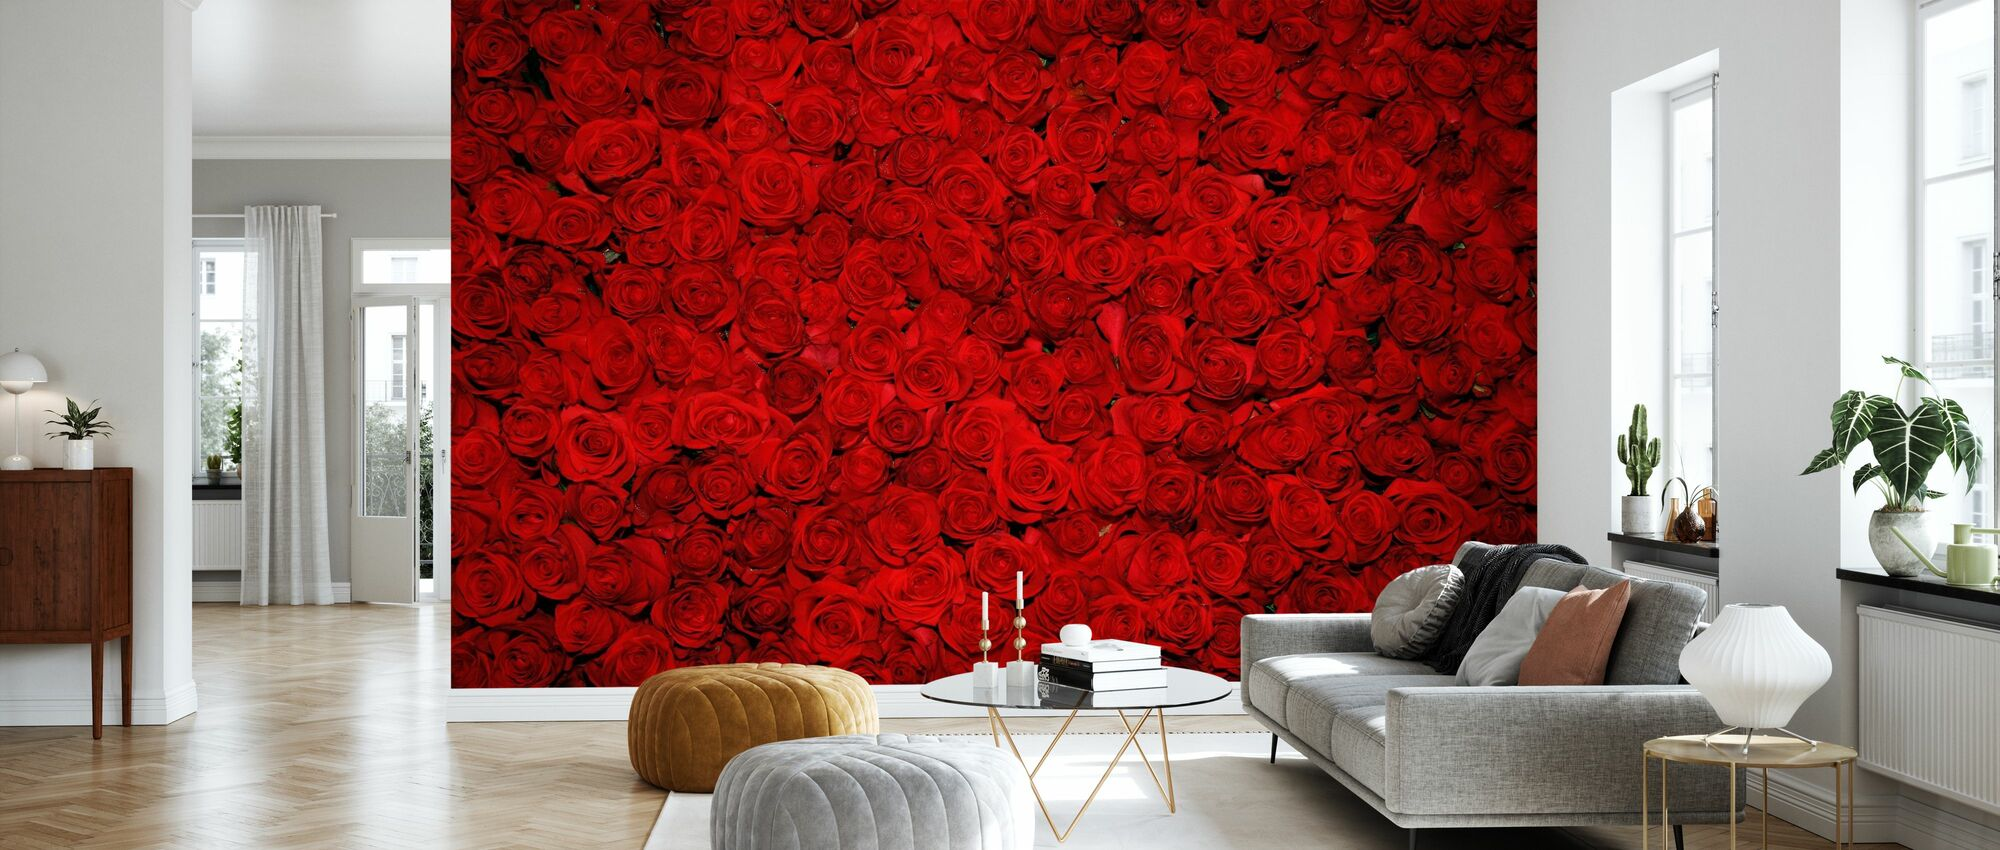 That's amore - Wallpaper - Living Room